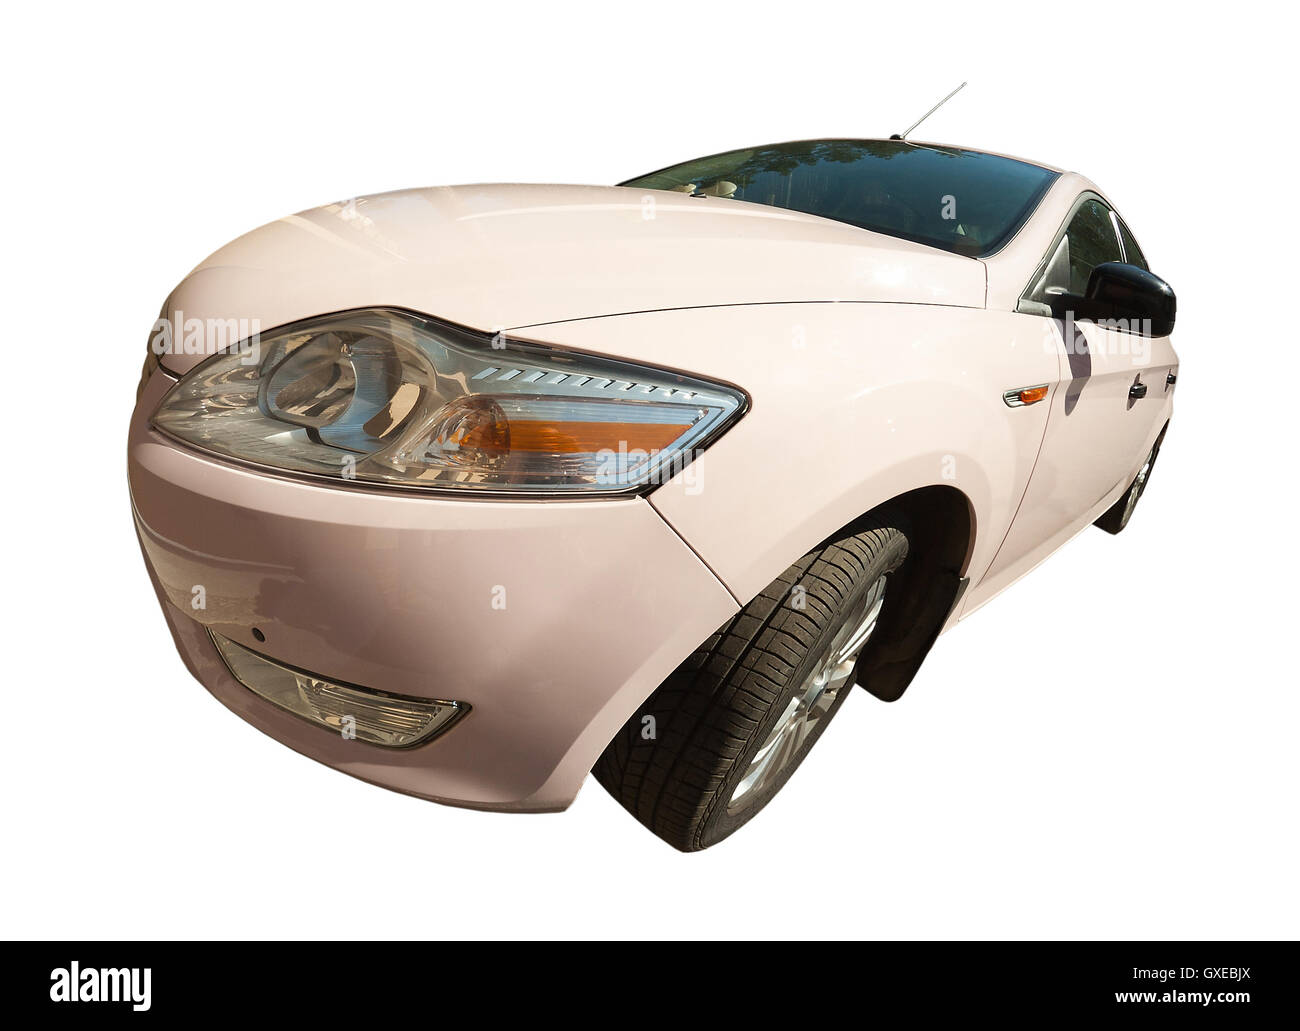 New pink car isolated over white background (backdrop). Front view. SHot with a fish-eye lens. - Stock Image